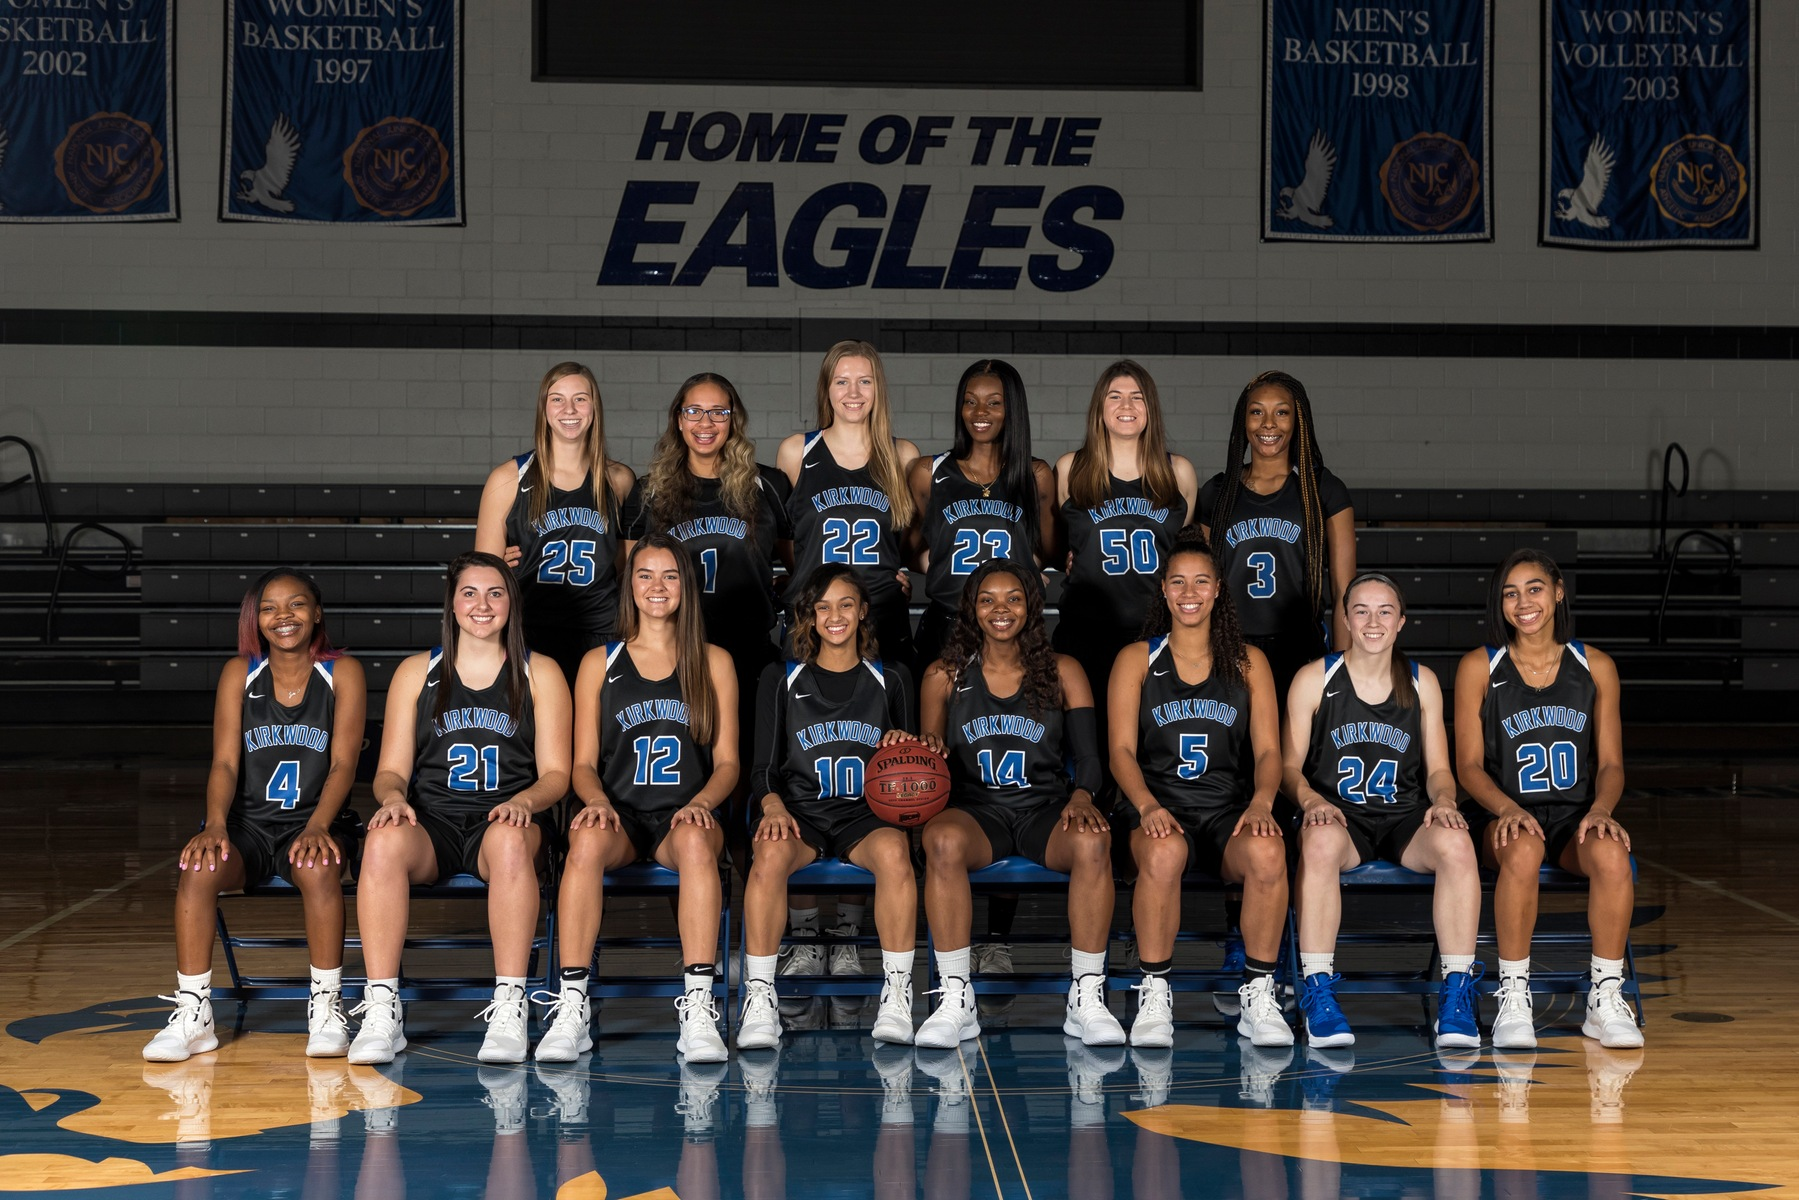 Eagles scrambling for No. 1 seed